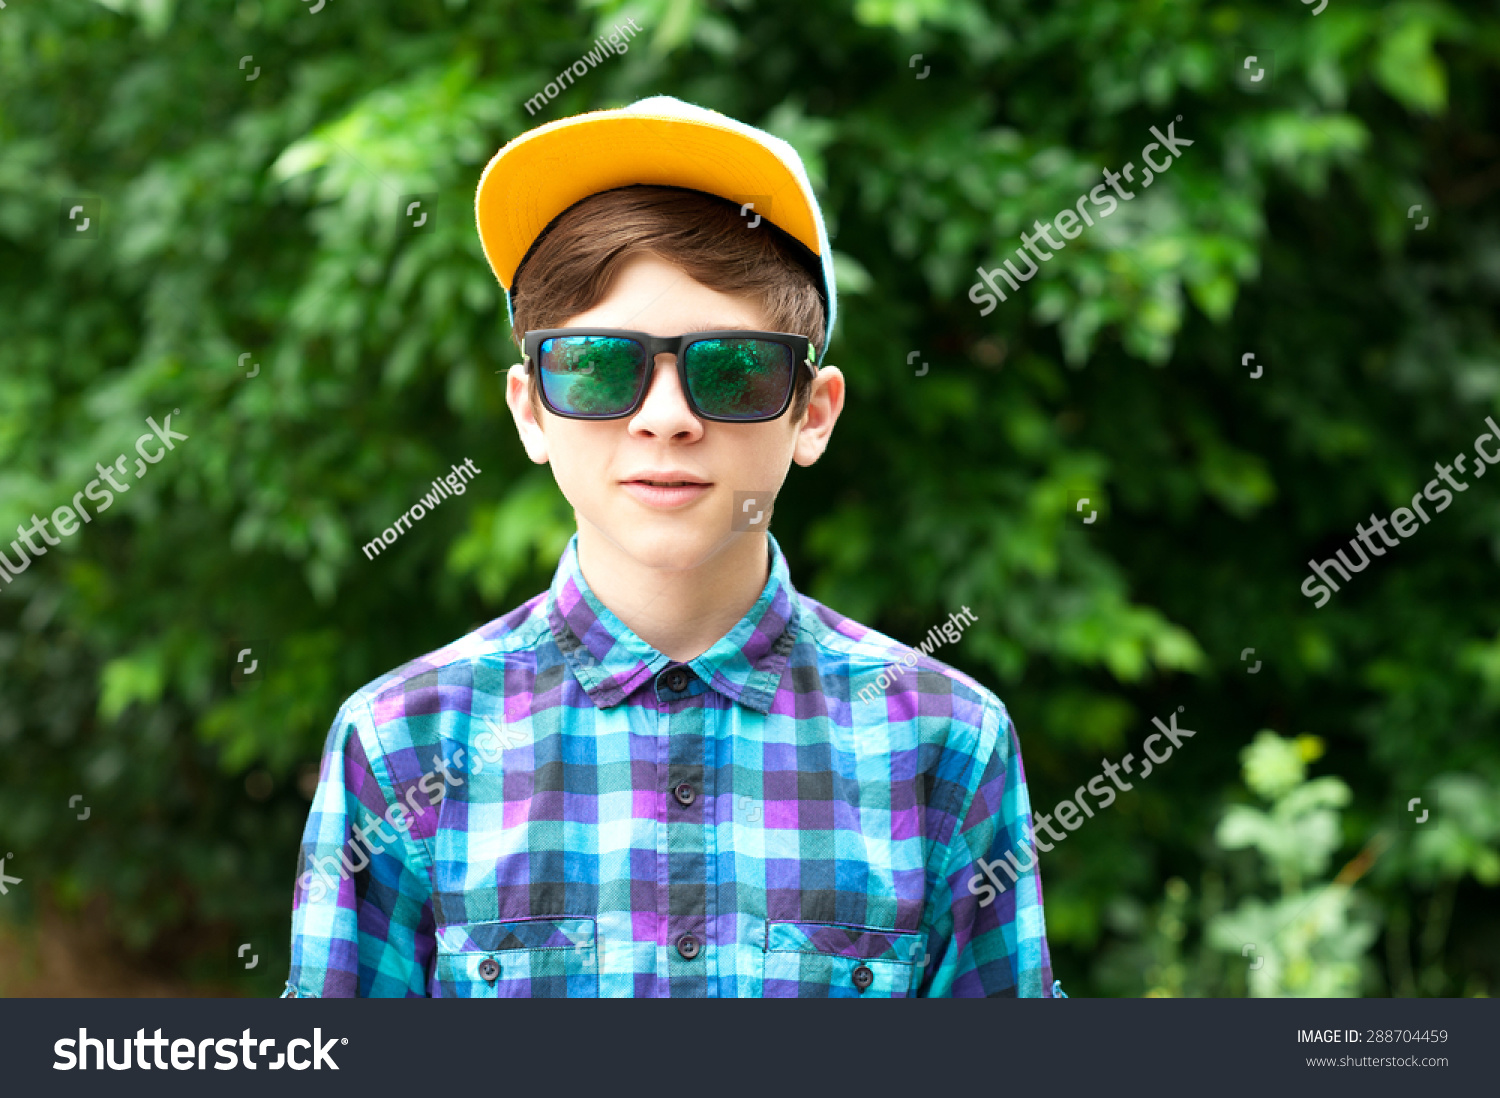 72be6f863674 Stylish teenage boy wearing sun glasses, cap and trendy shirt outdoors.  Looking at camera.